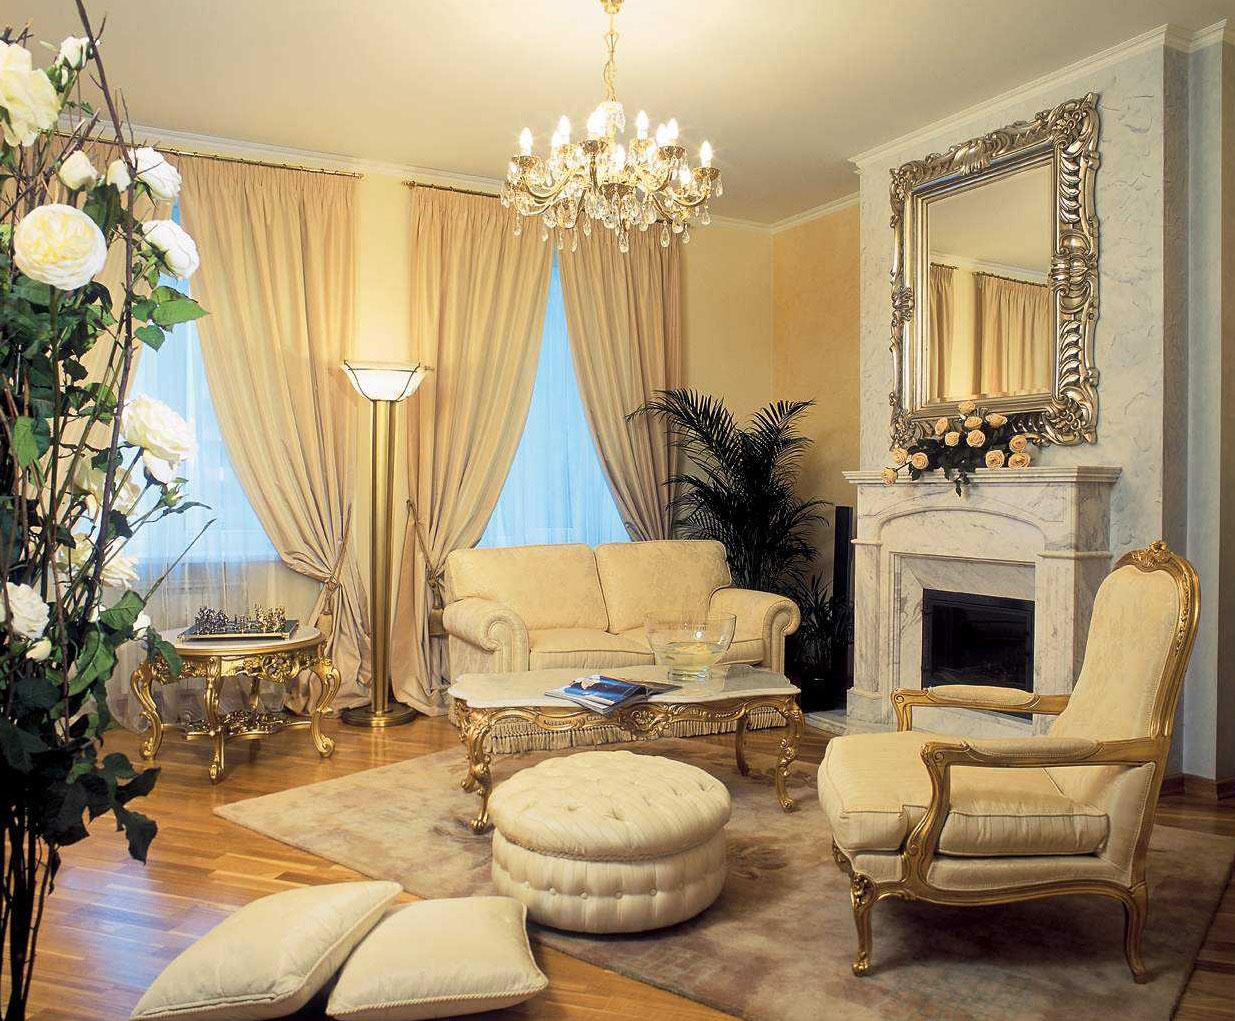 The Best Living Room Decor Ideas that You can Fix by Yourself